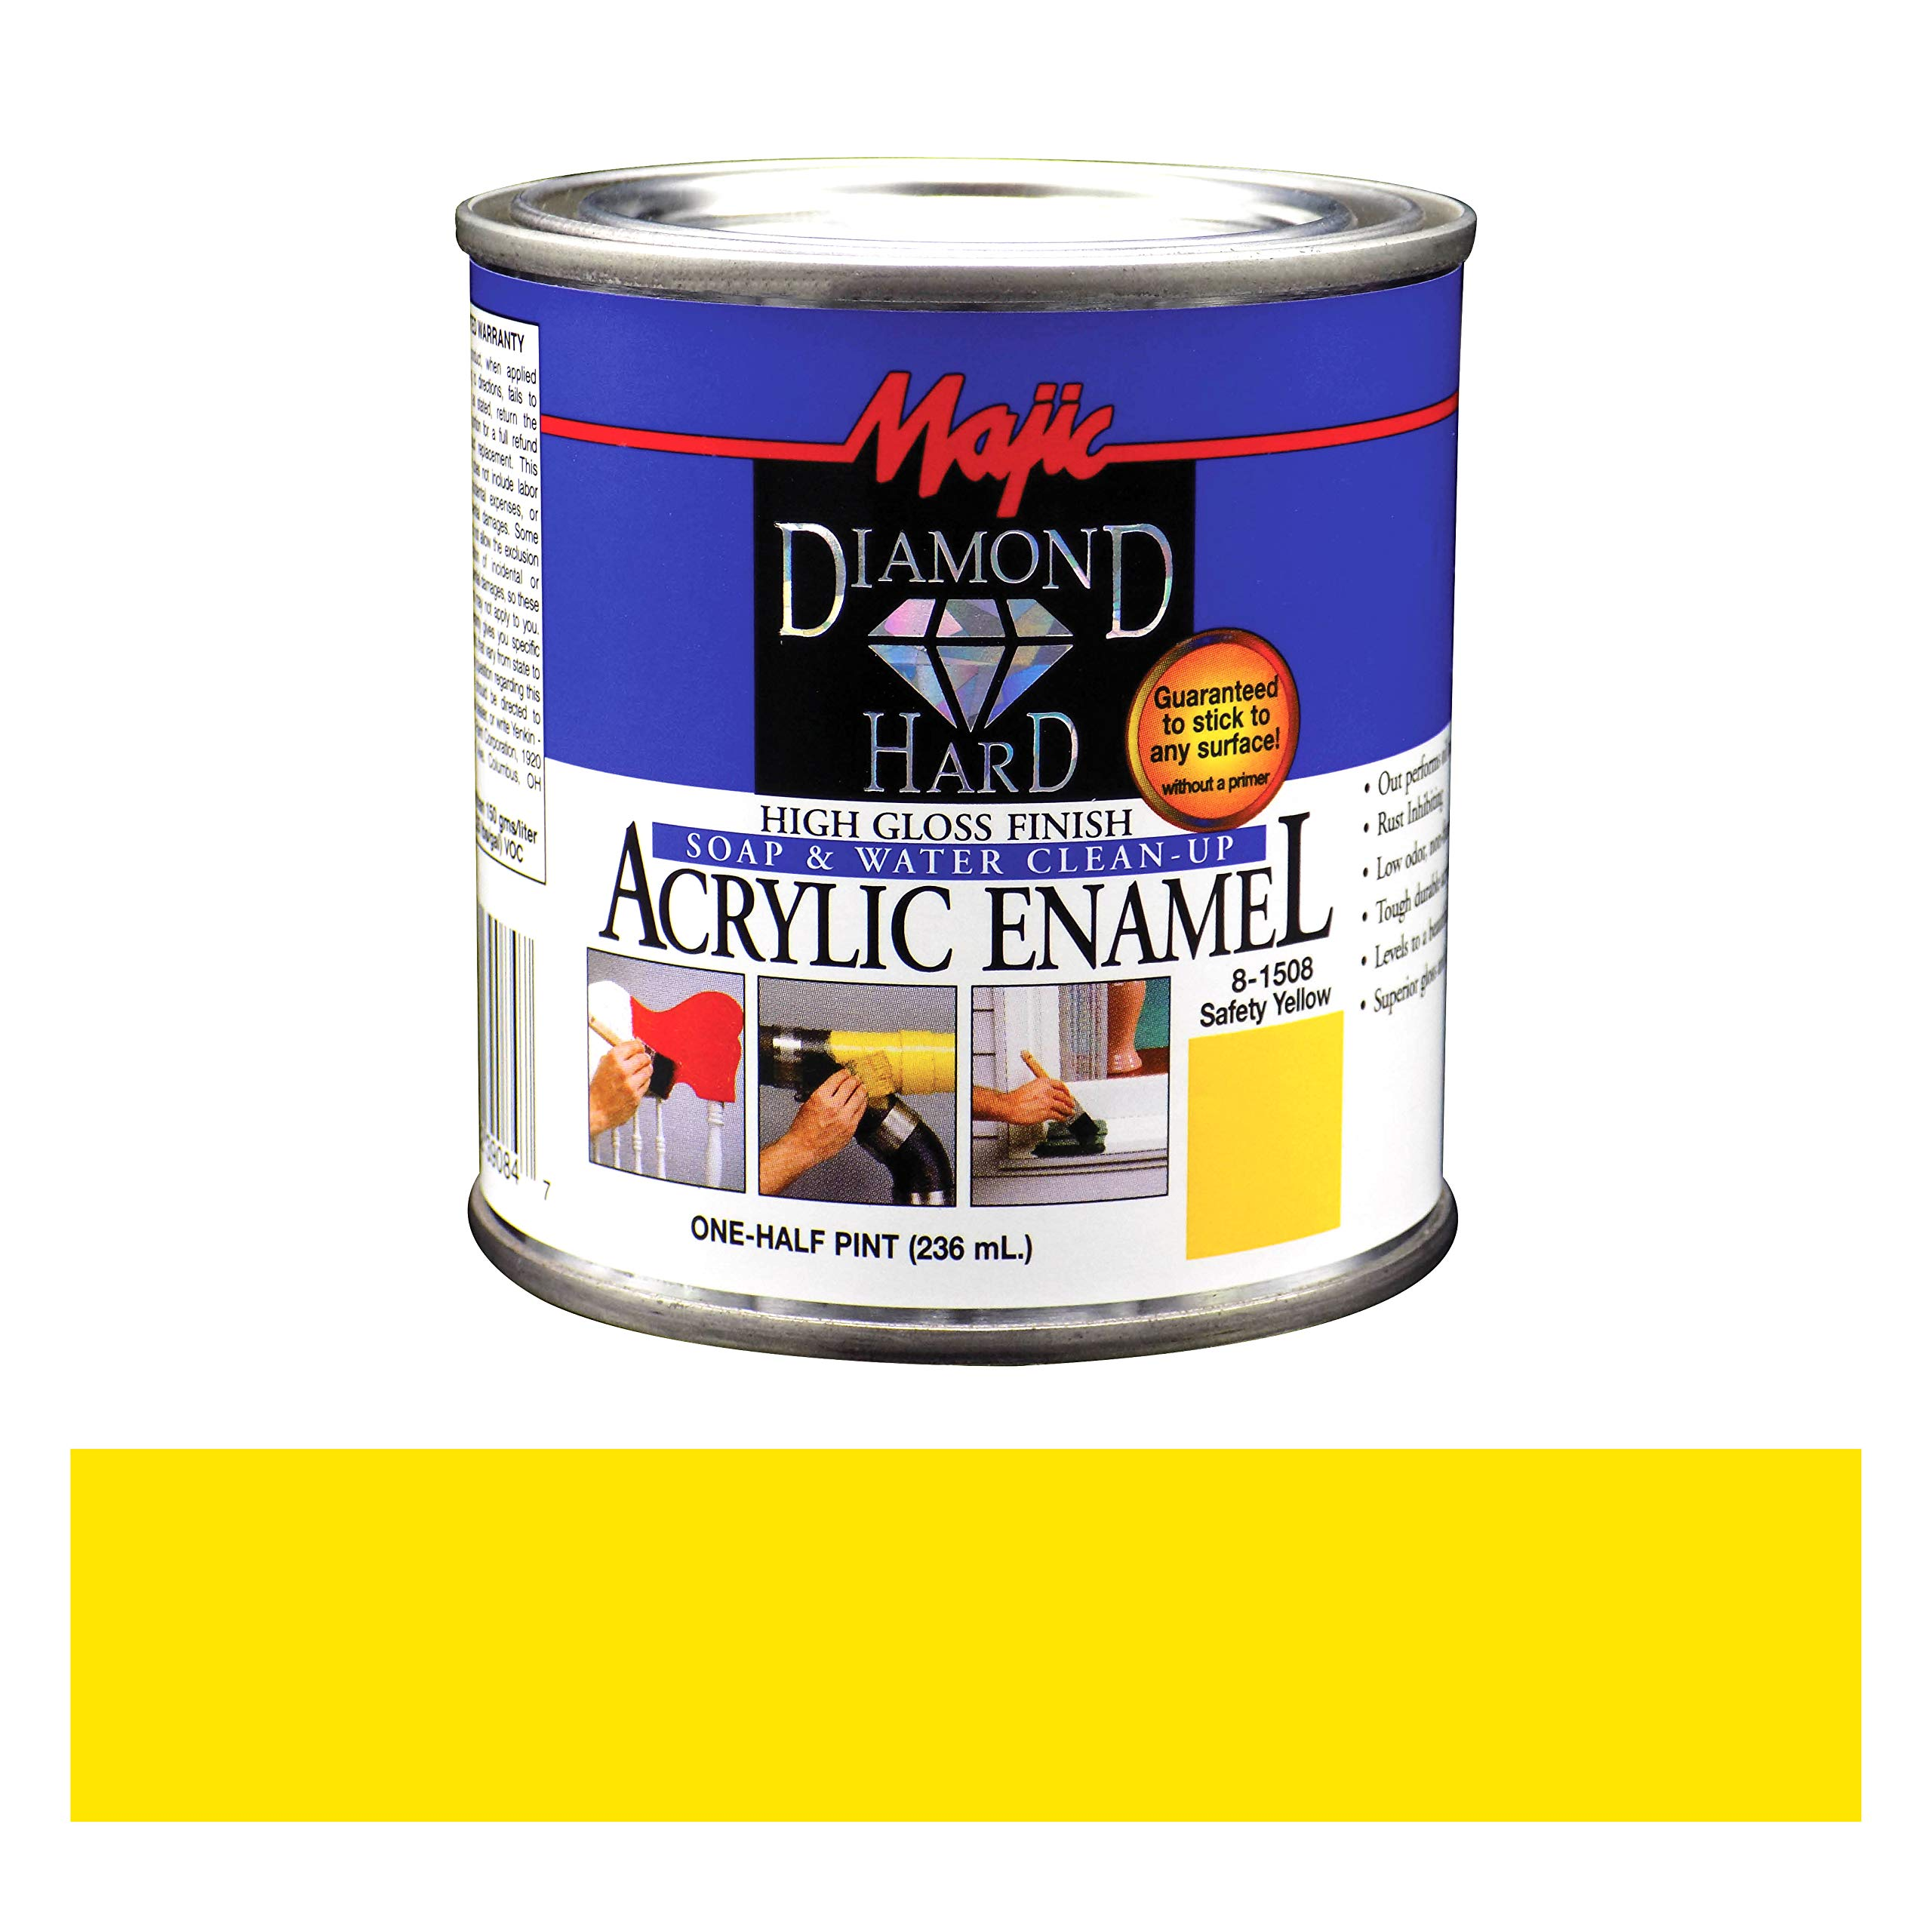 Majic Paints 8-1508-4 Diamond Hard Acrylic Enamel High Gloss Paint, Half Pint/8-Ounce, Safety Yellow